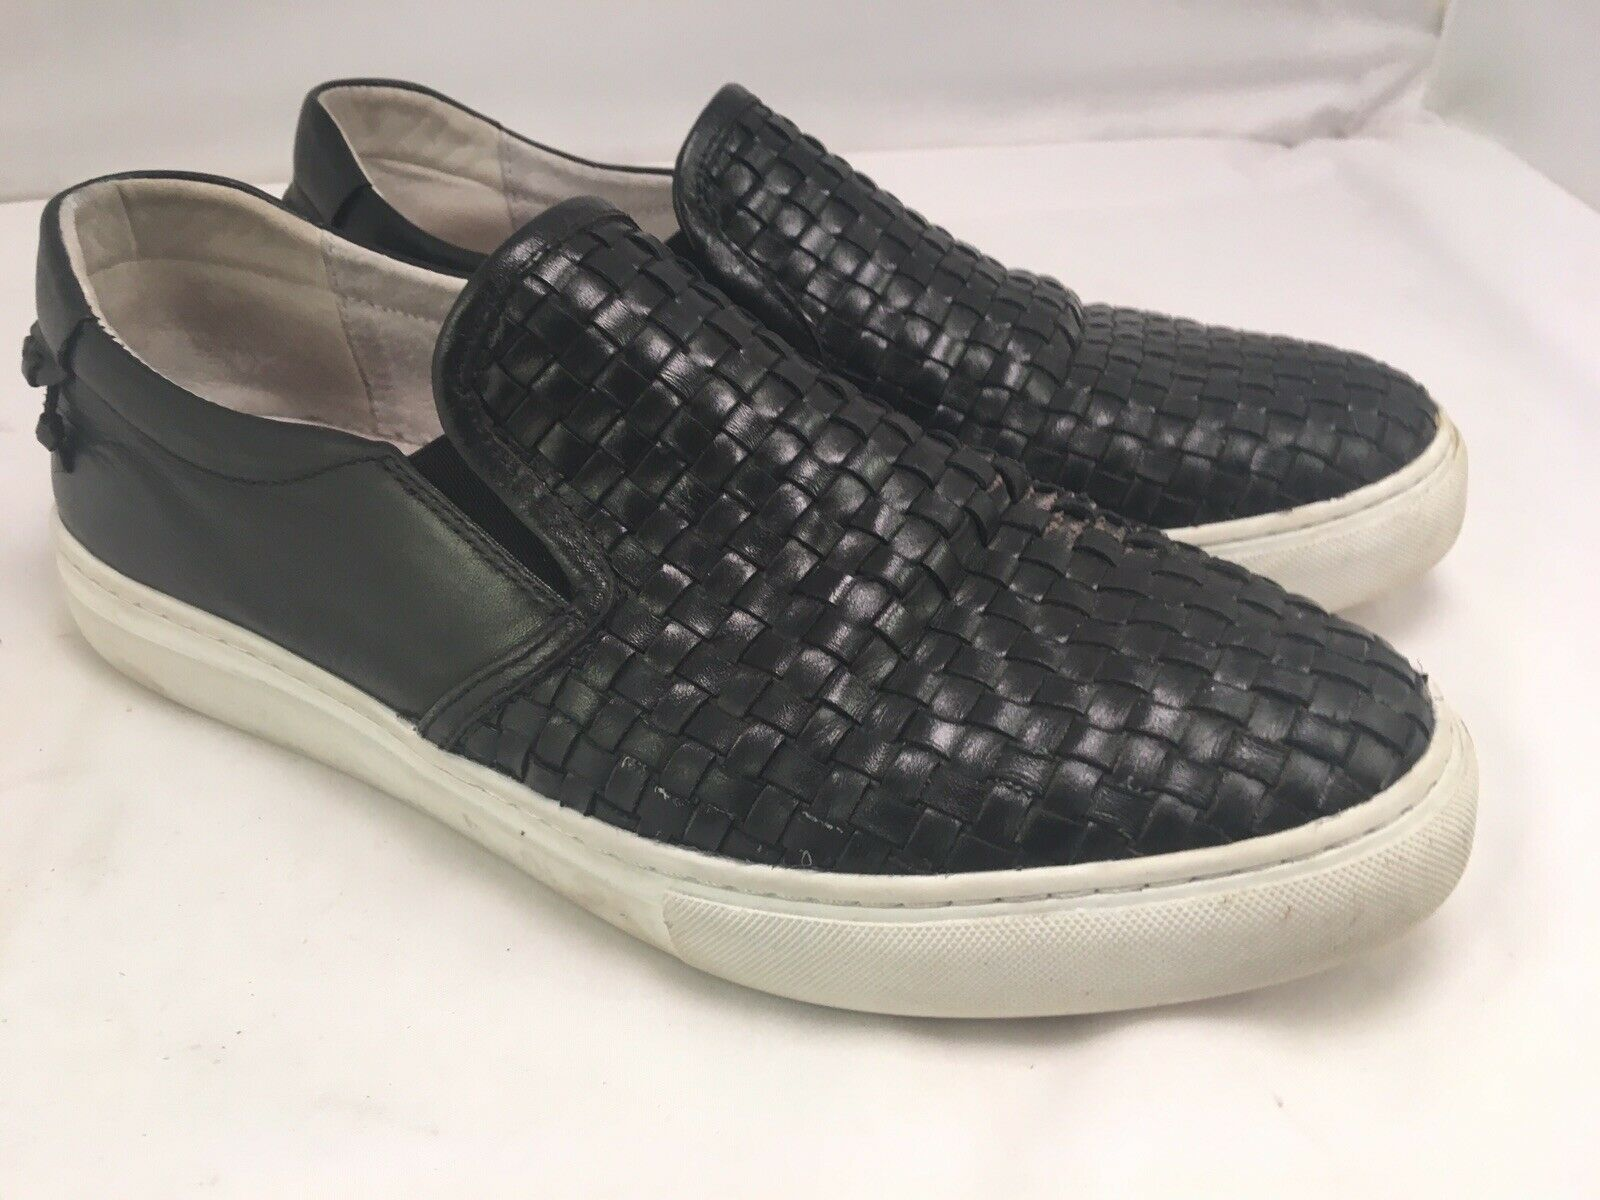 Vintage Foundry Woven Leather Slip On shoes Size 9.5